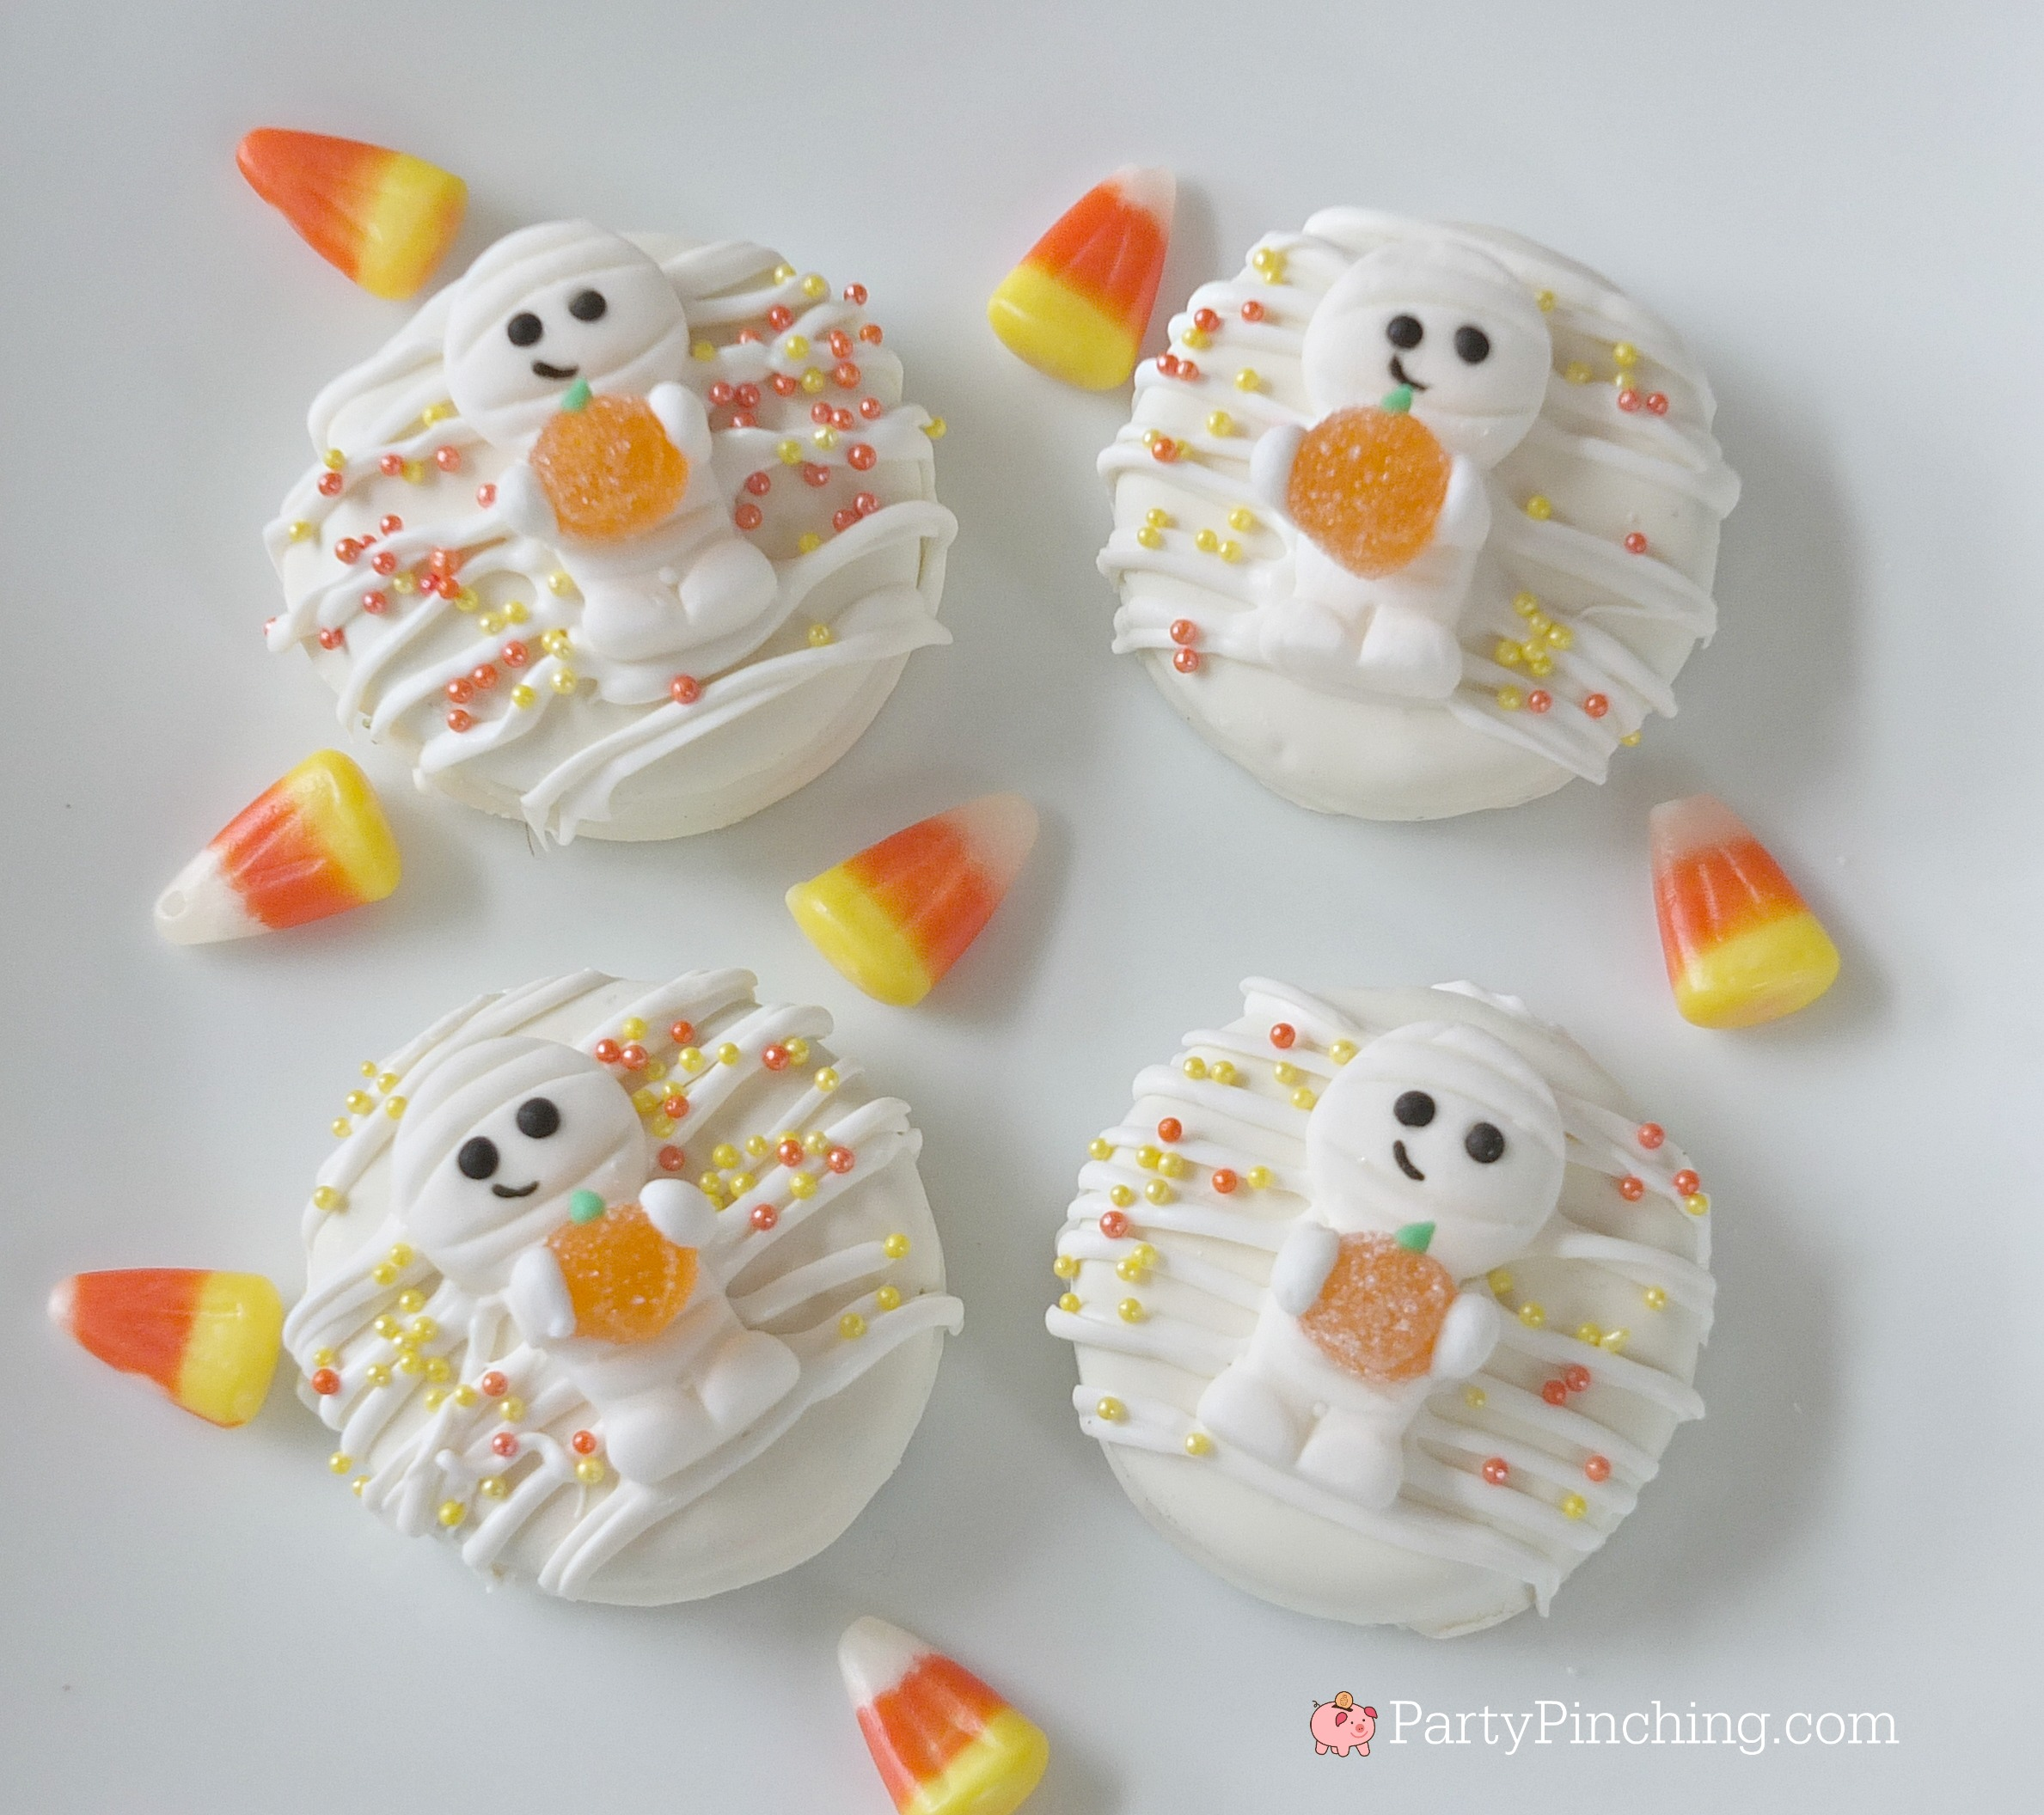 Mummy cookies, cute cookies for Halloween, Oreo Halloween cookies, Halloween treat party food ideas for kids, fun food, sweet treats, kid friendly food, Wilton